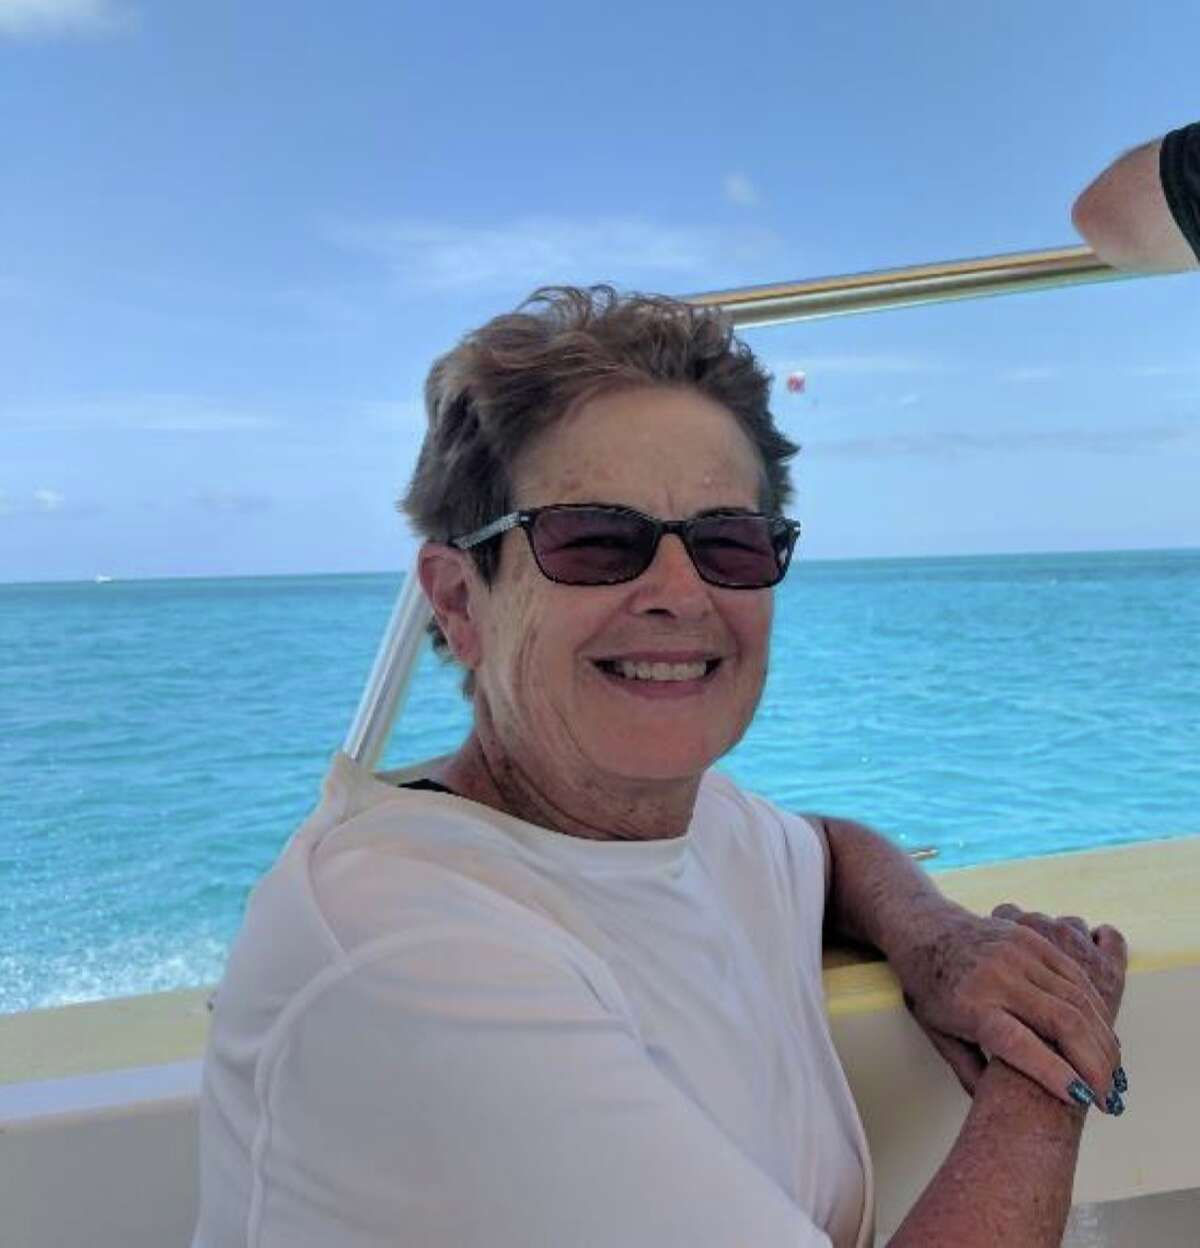 The family of Diane Hendricks claims Sandals Resorts International offered her family a free five-day stay at one of their resorts after Hendricks drowned during a snorkeling expedition in July 2019.